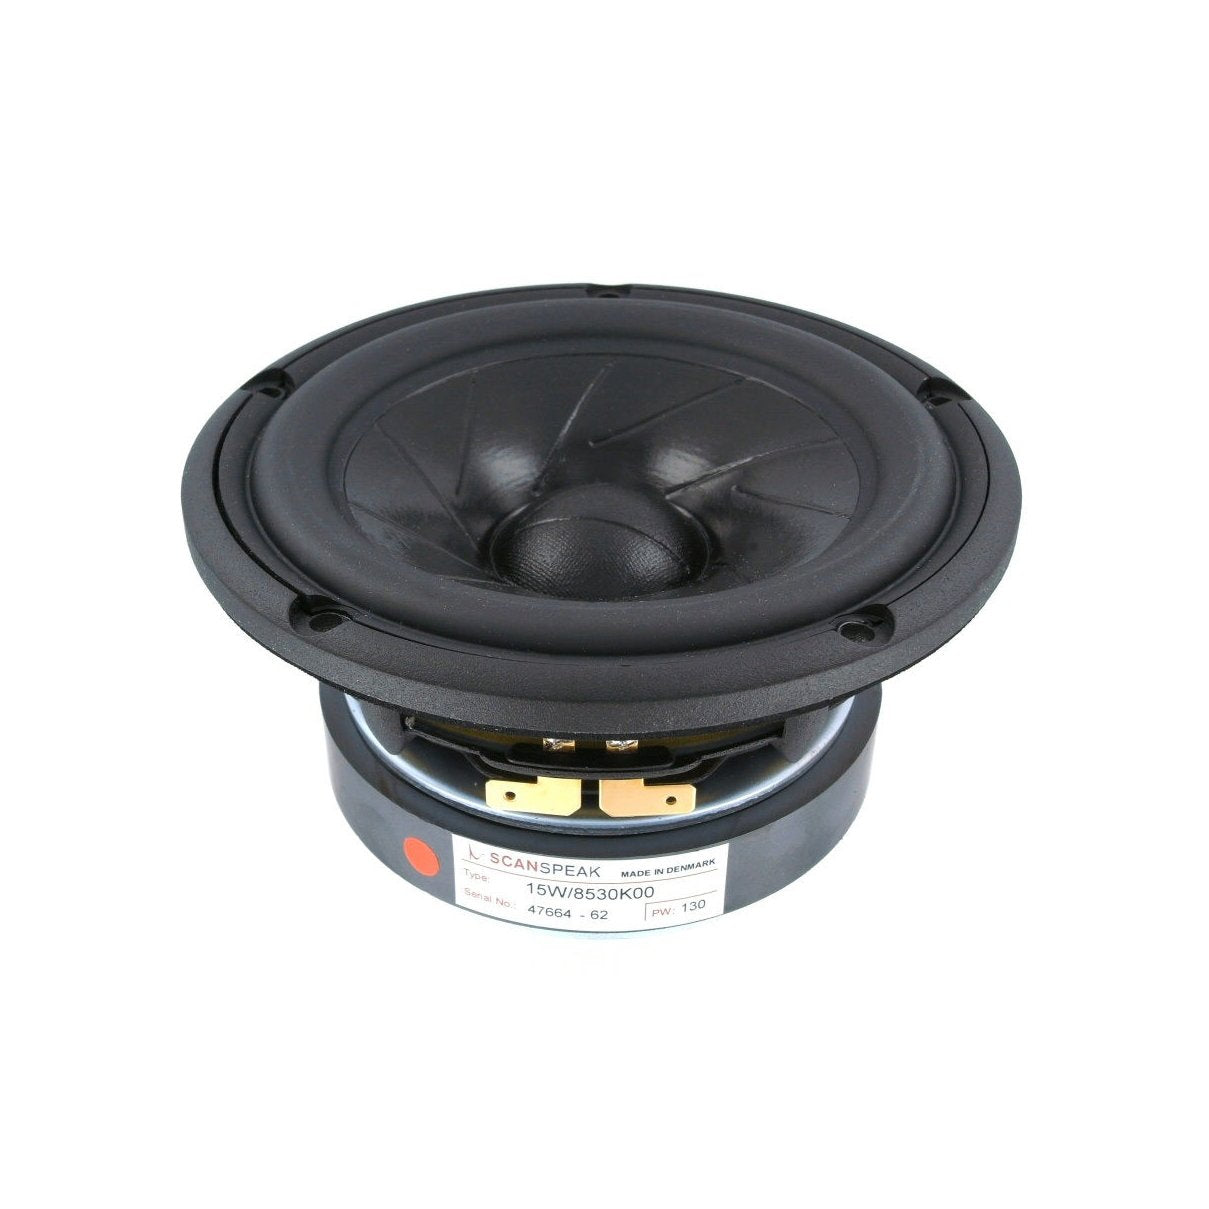 Scanspeak Revelator 15W/8530K00 Midwoofer - Willys-Hifi Ltd